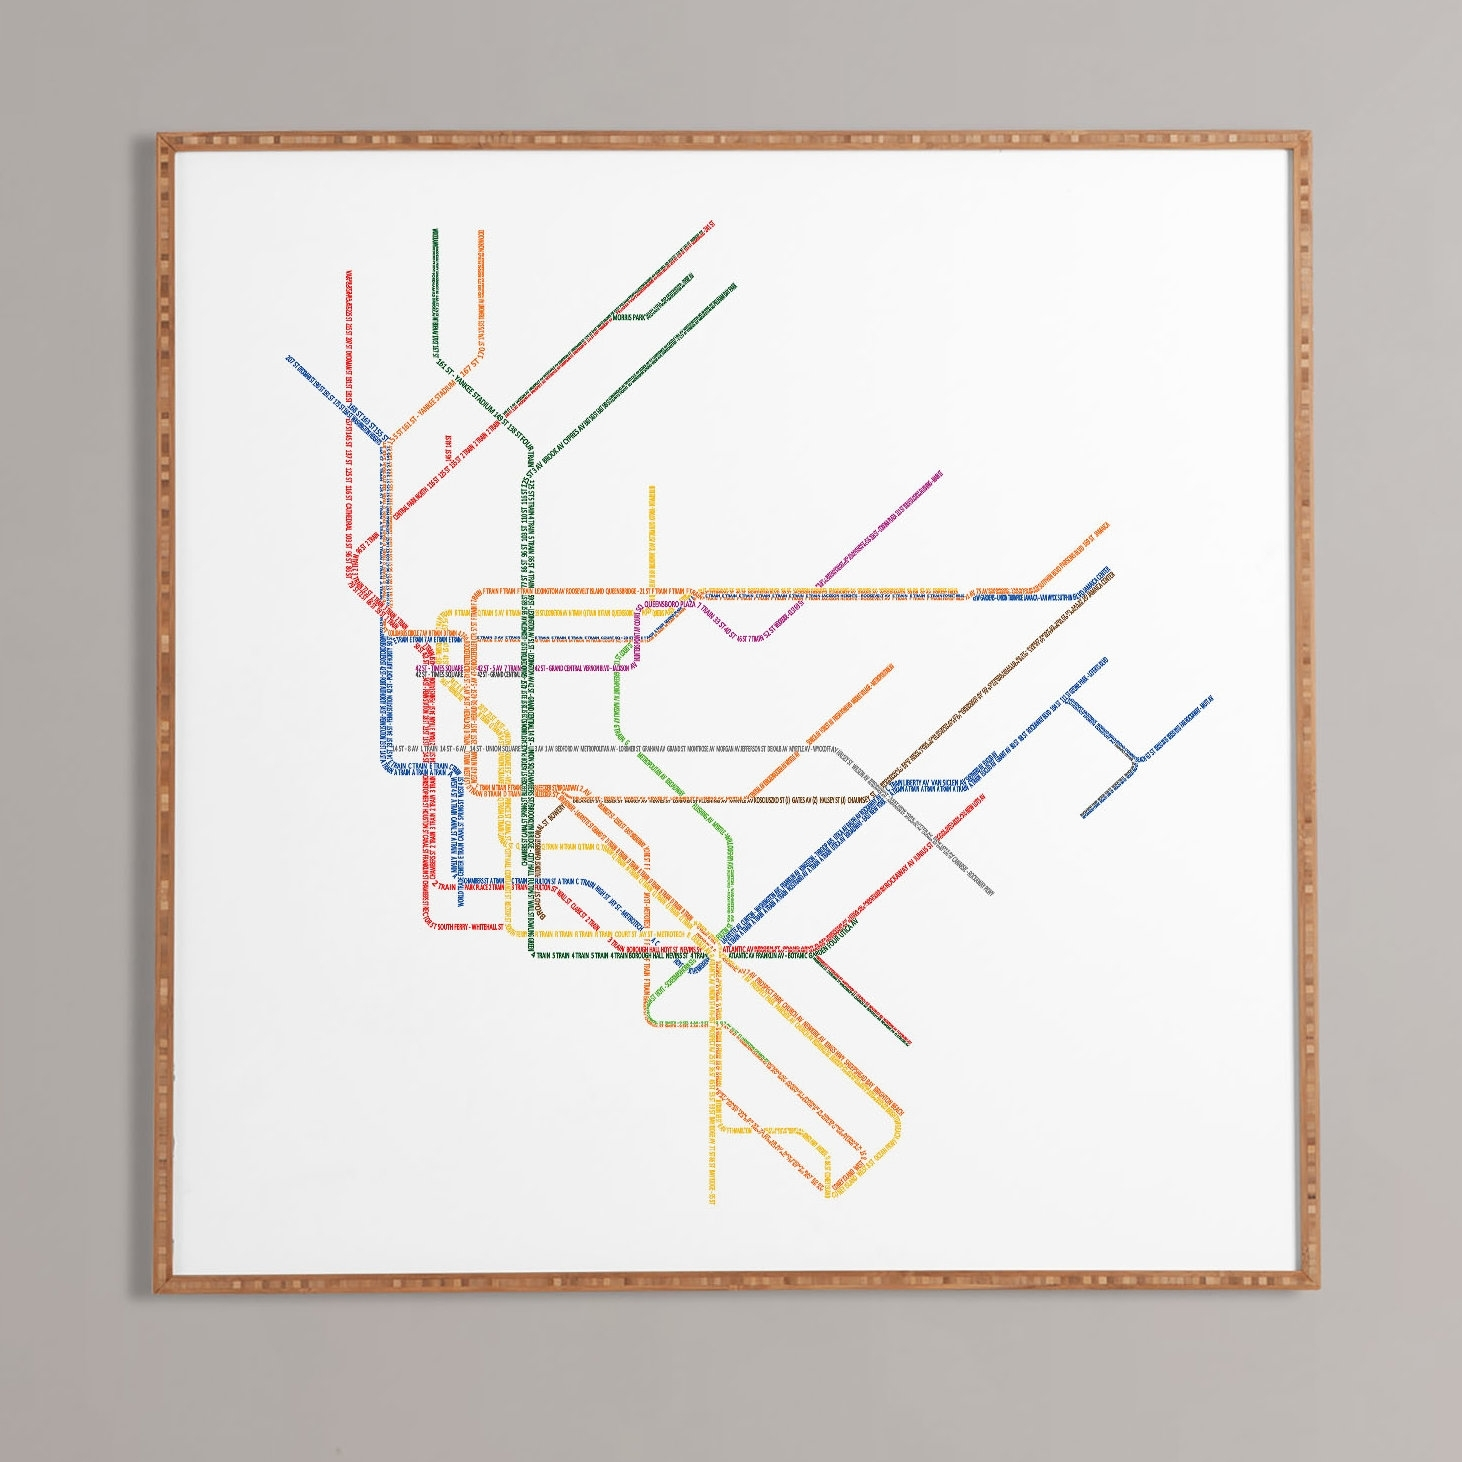 Nyc Subway Map' Framed Wall Art & Reviews | Allmodern for Nyc Subway Map Wall Art (Image 17 of 20)